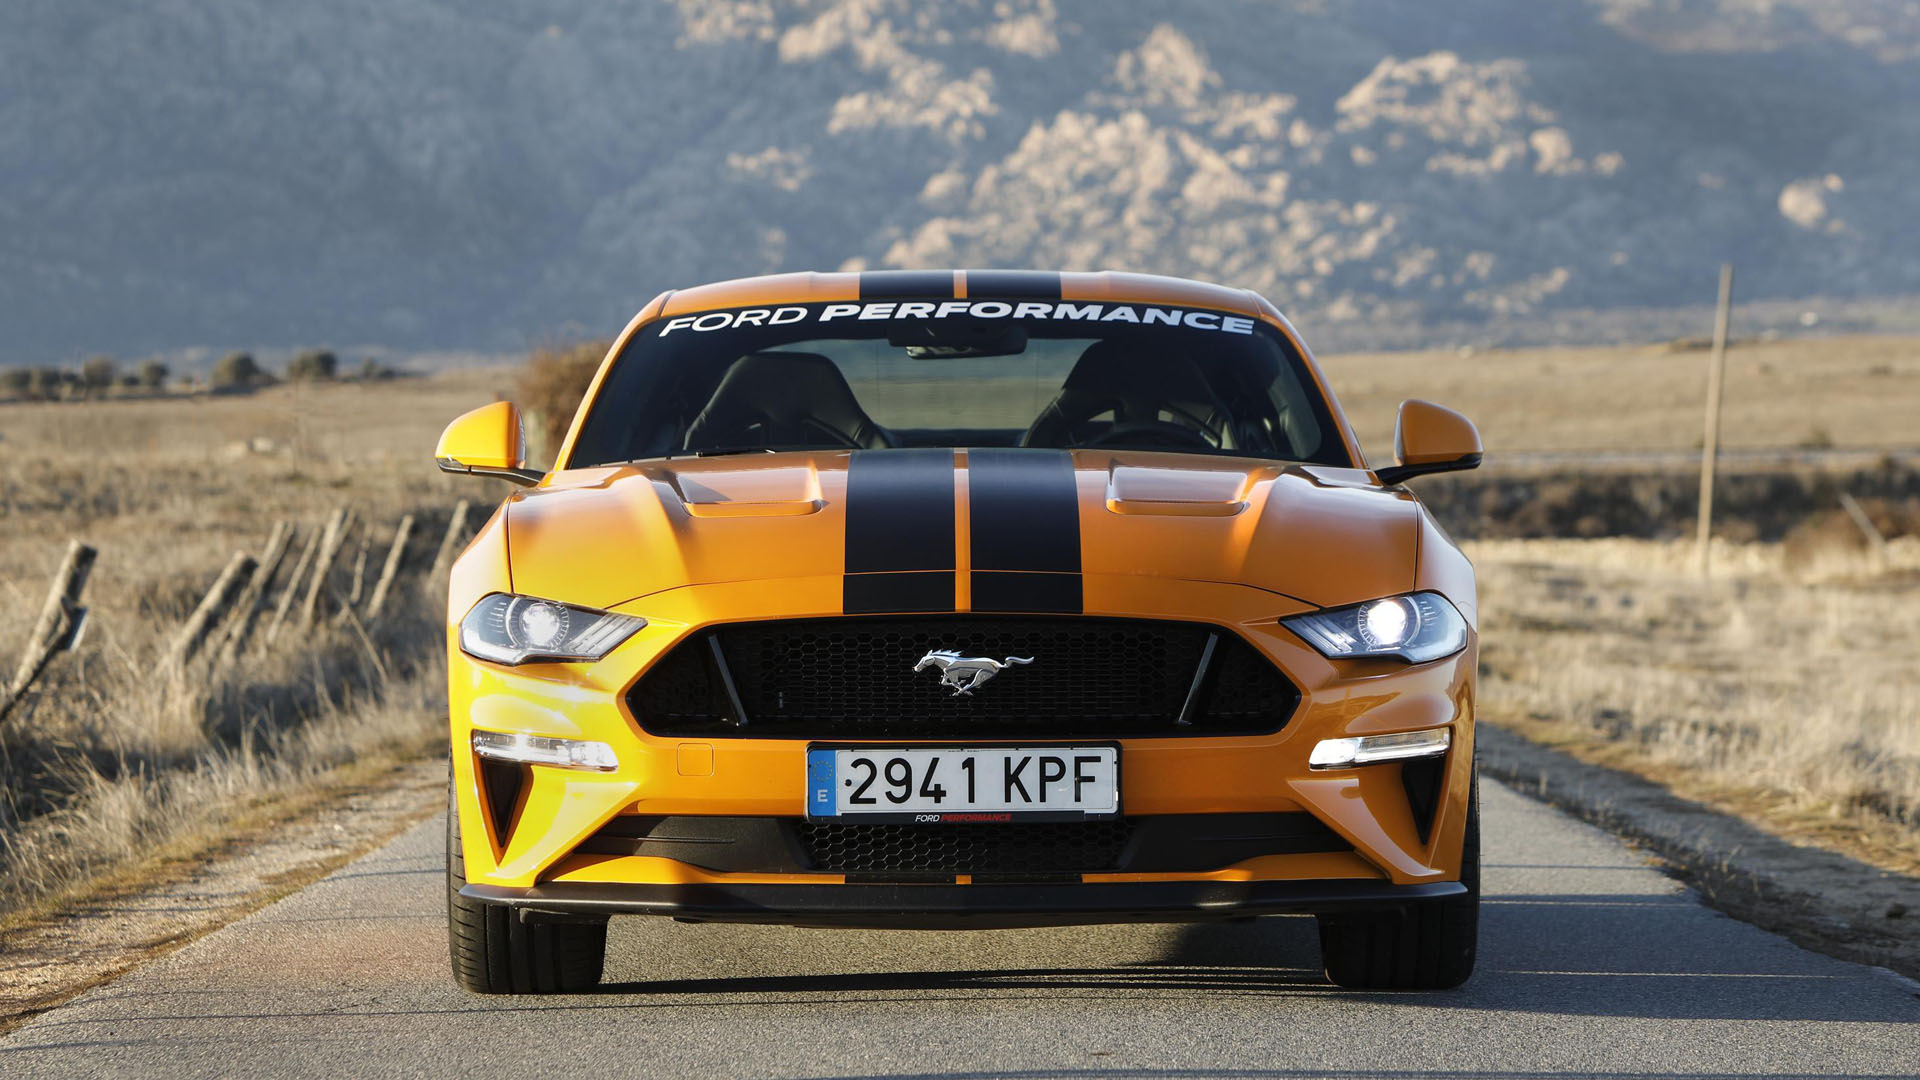 Ford Mustang Performance 3